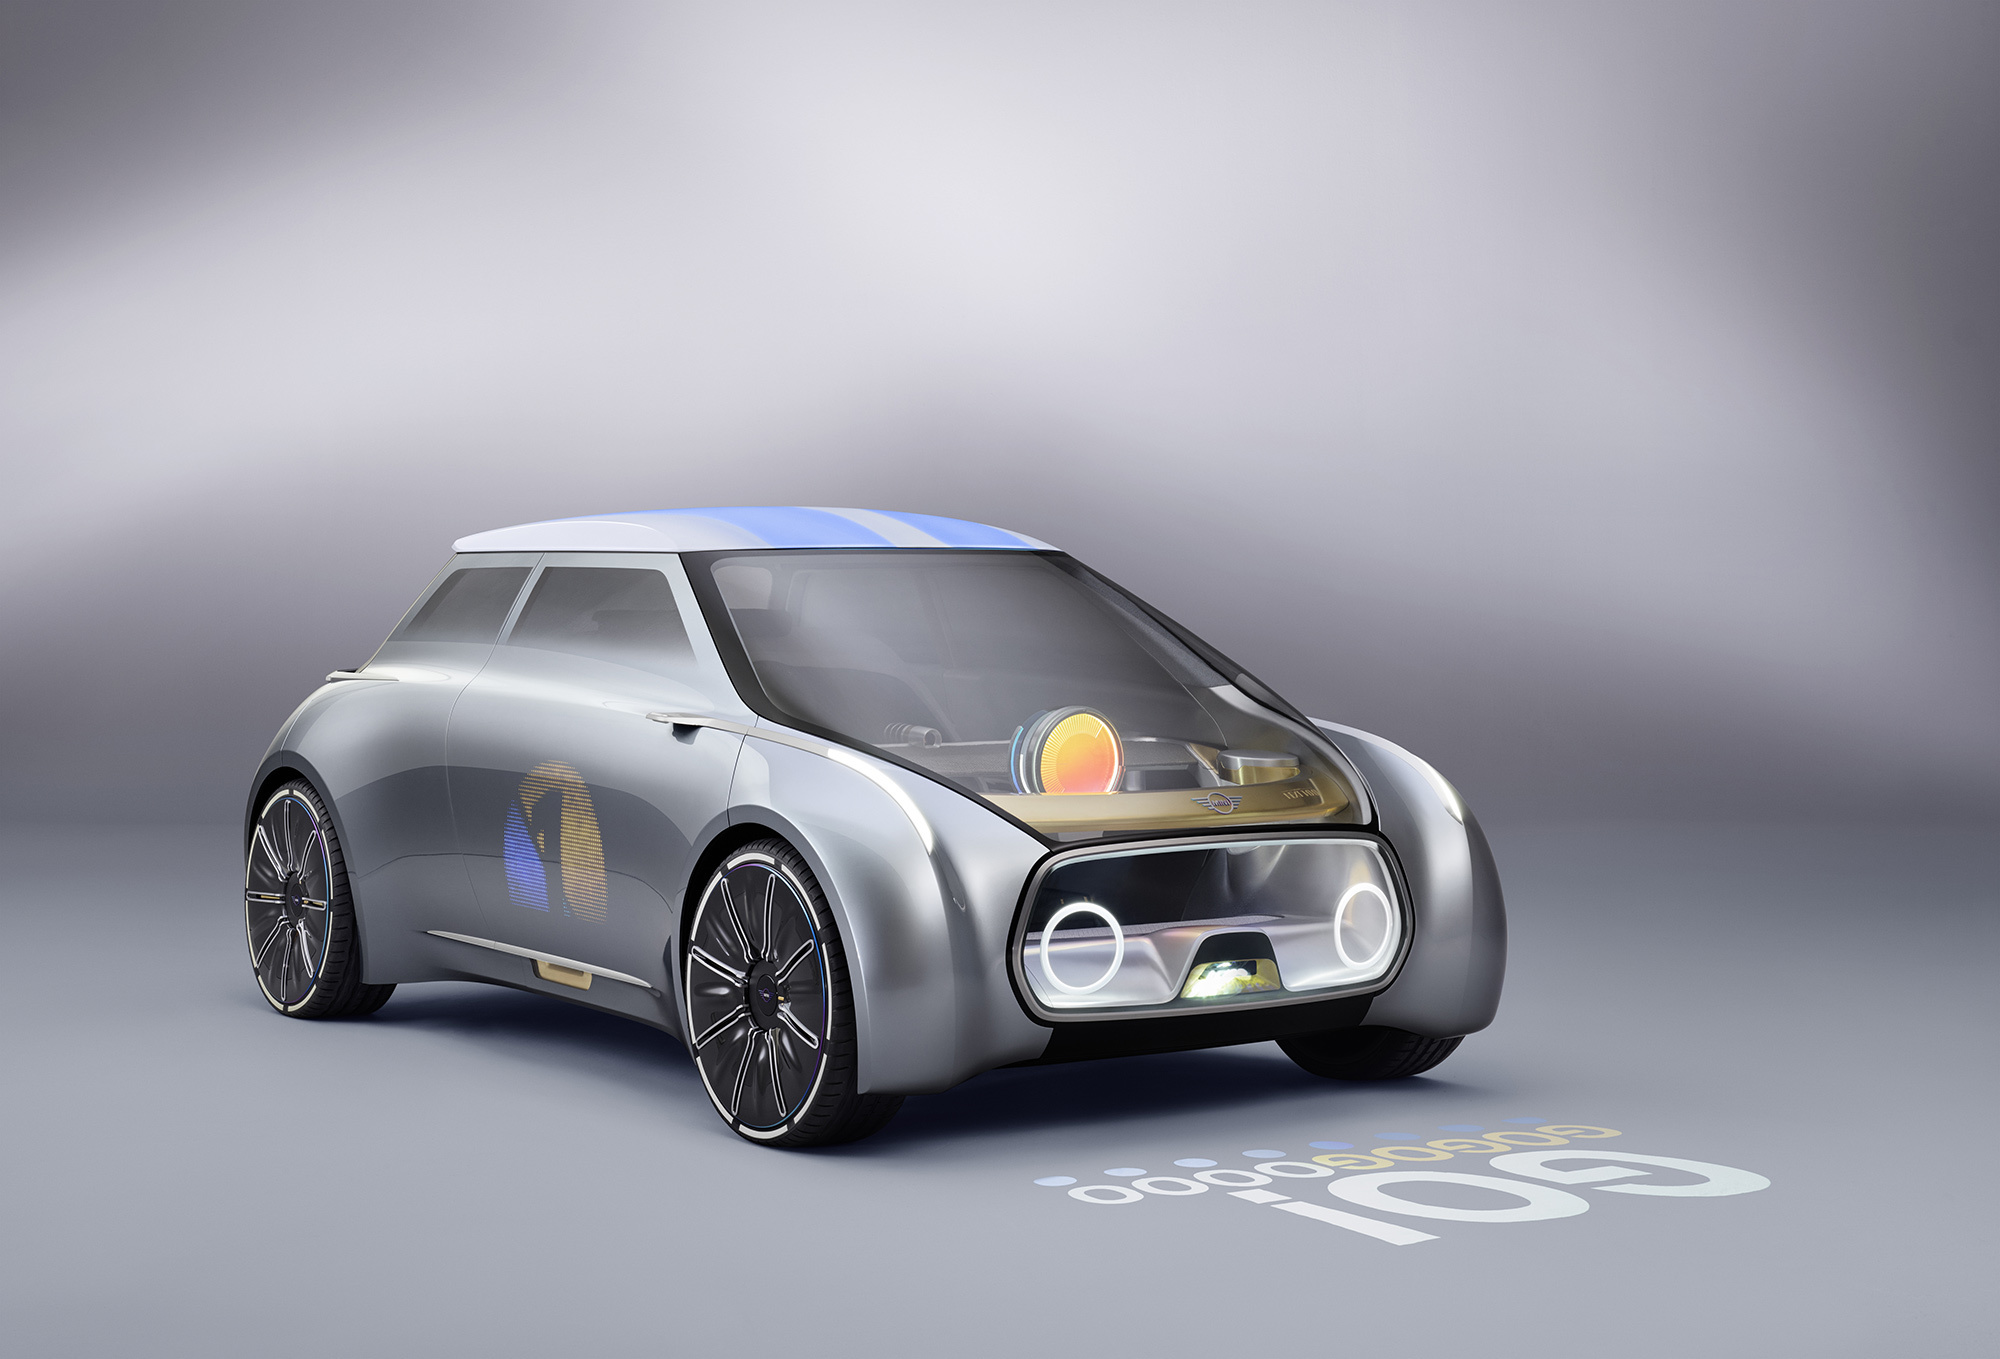 Mini Vision Next 100 Computer Wallpaper